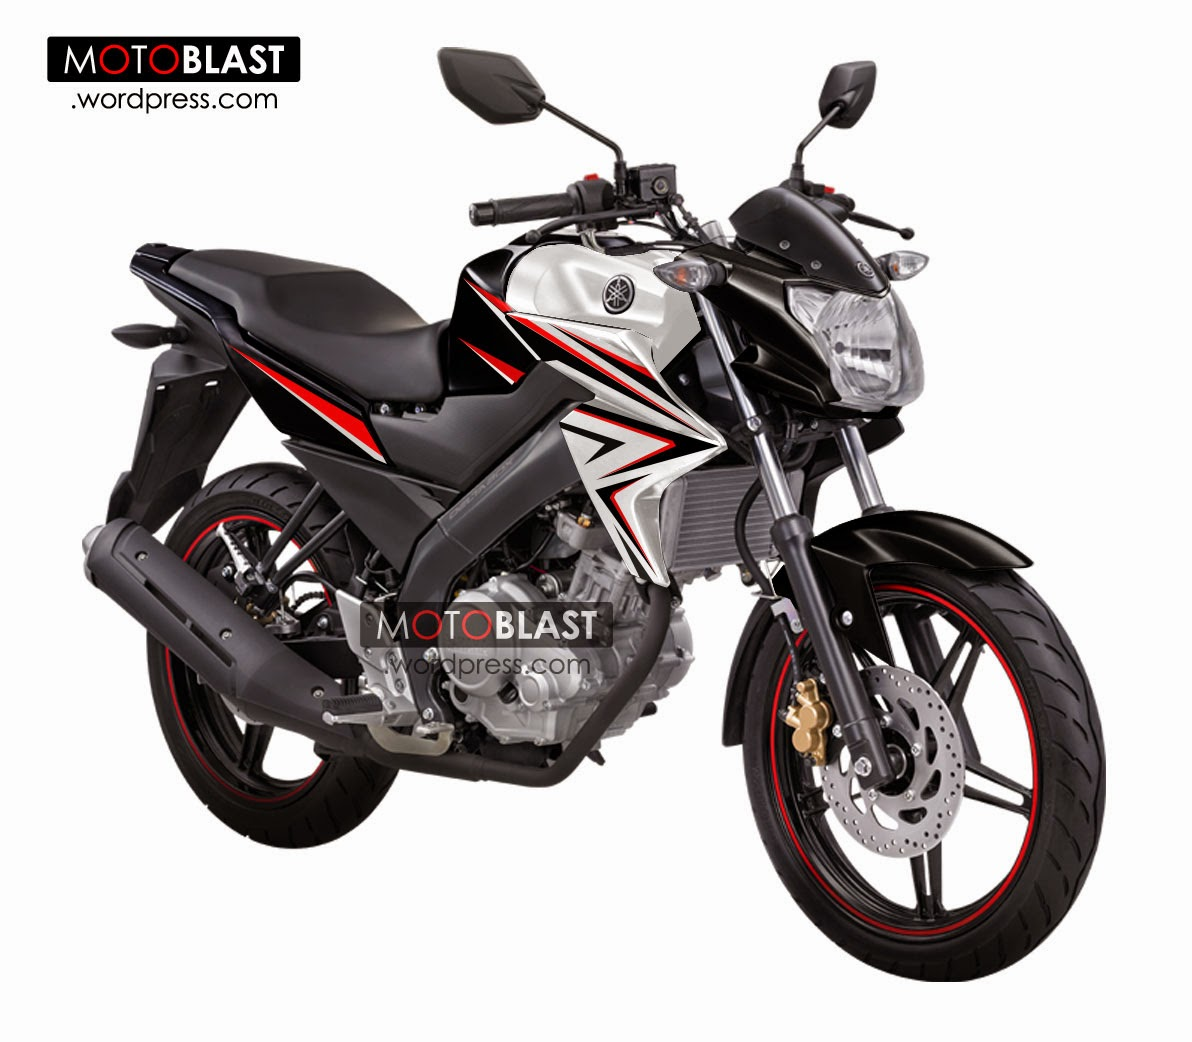 Modifikasi Striping Cb150r Motoblast